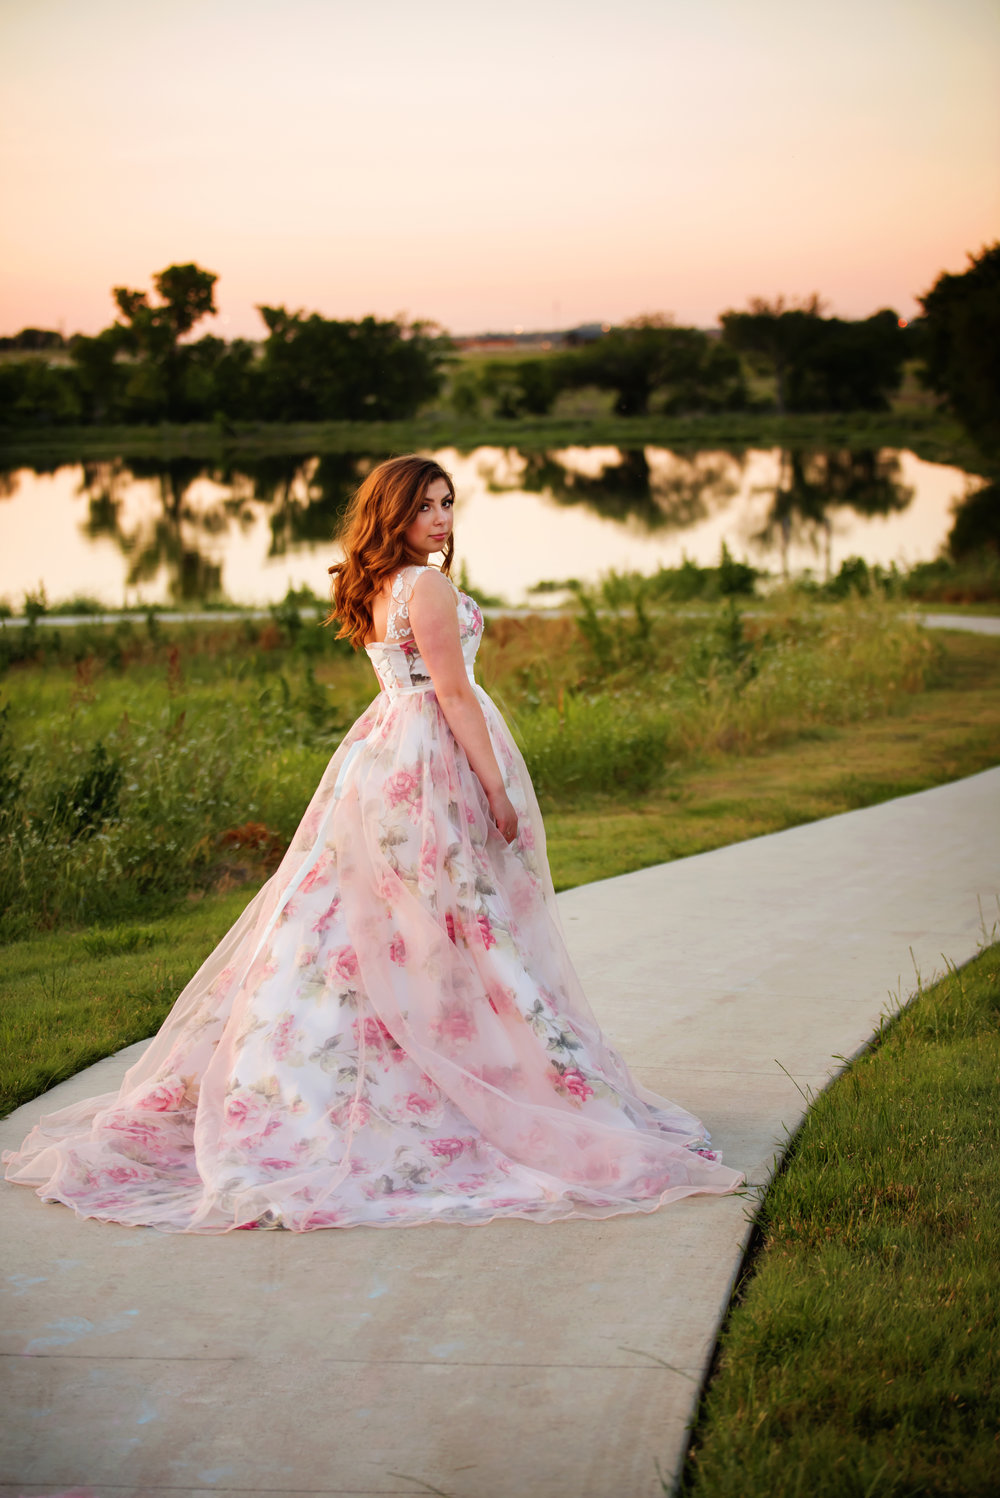 reina-legrand-photography-photographer-beauty-glamor-senior-haslet-colleyville-fort-worth-dallas-dfw-westlake-southlake-grapevine-ciara3.jpg